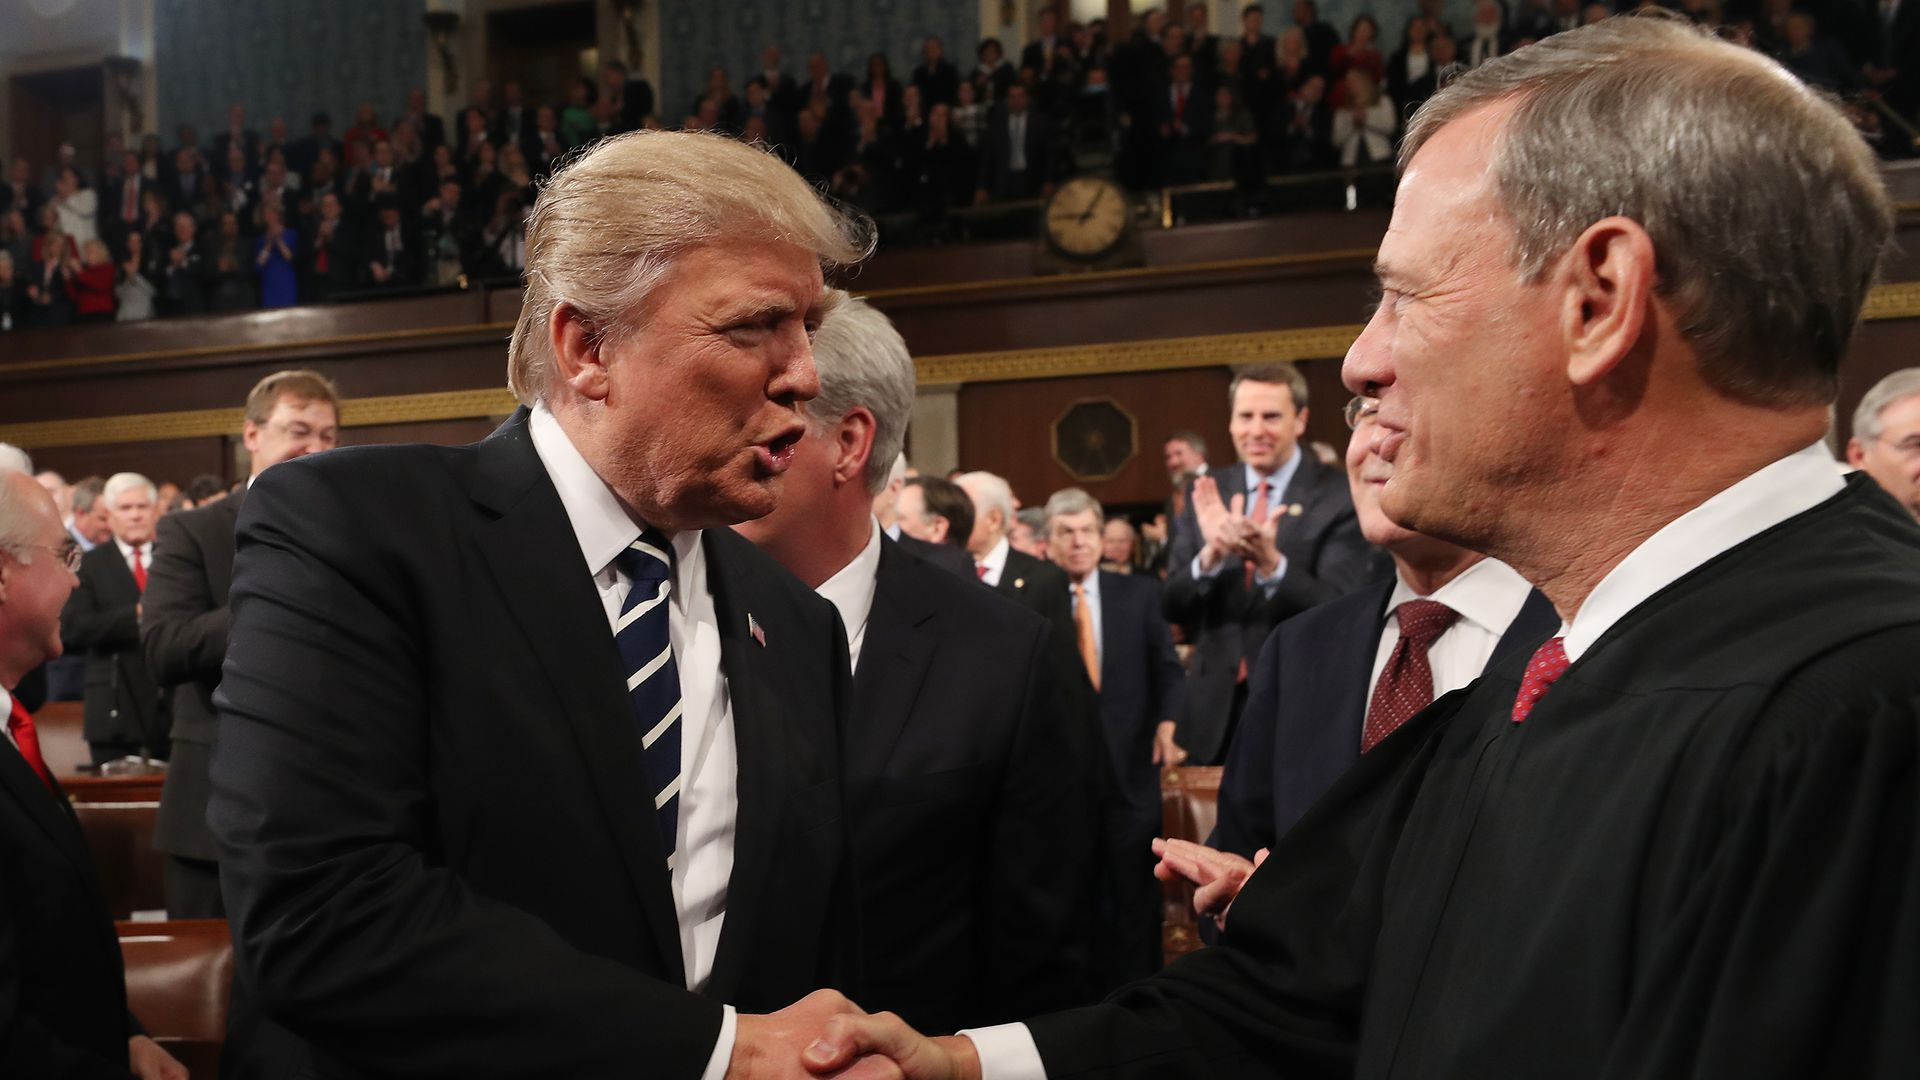 President Trump shakes hands with Chief Justice John Roberts